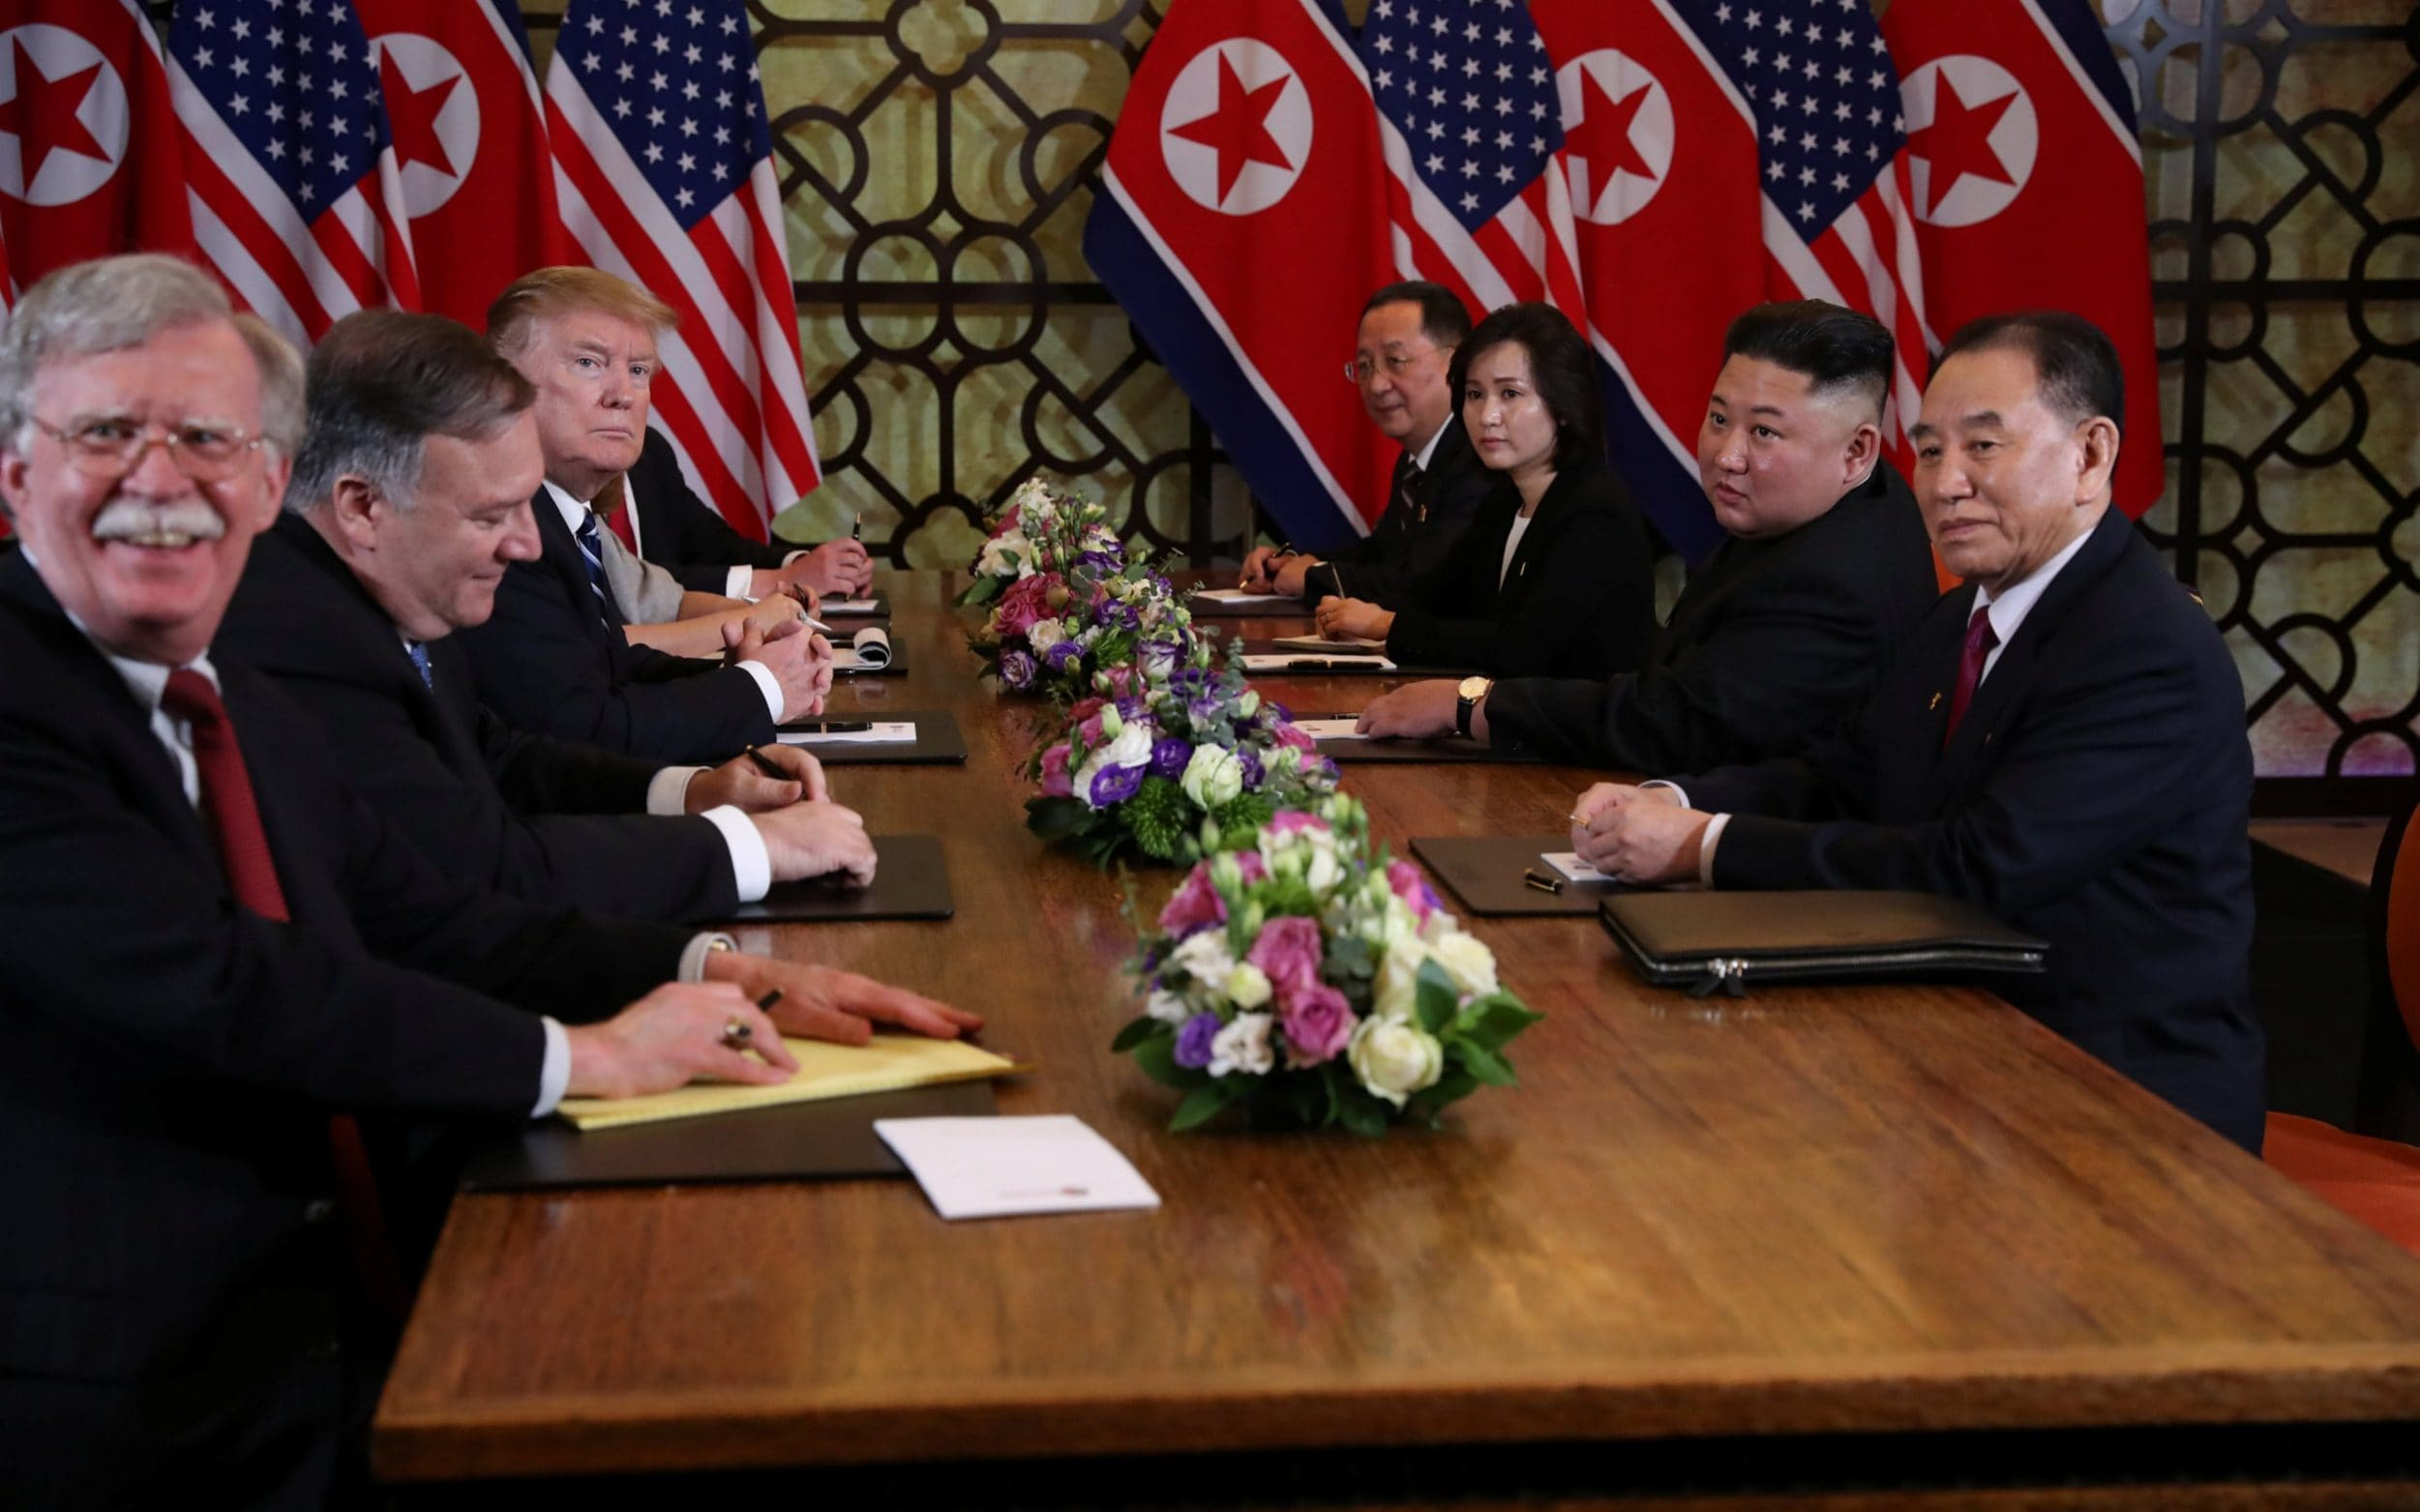 Boltons White House exit signals new hope for US-North Korea talks despite summer of missile tests